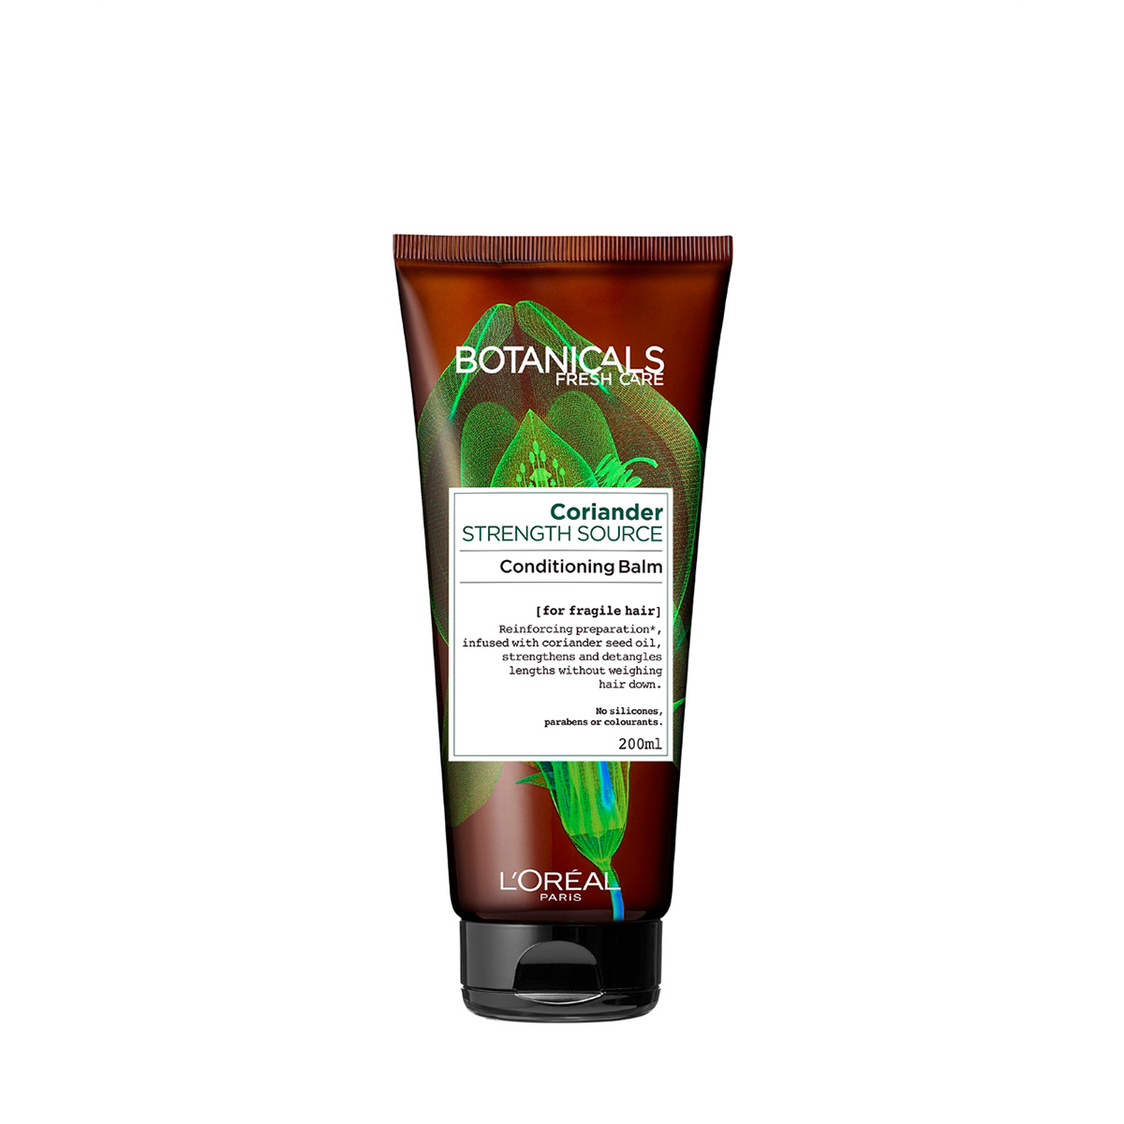 Botanicals Coriander Strength Cure Conditioner 200ml